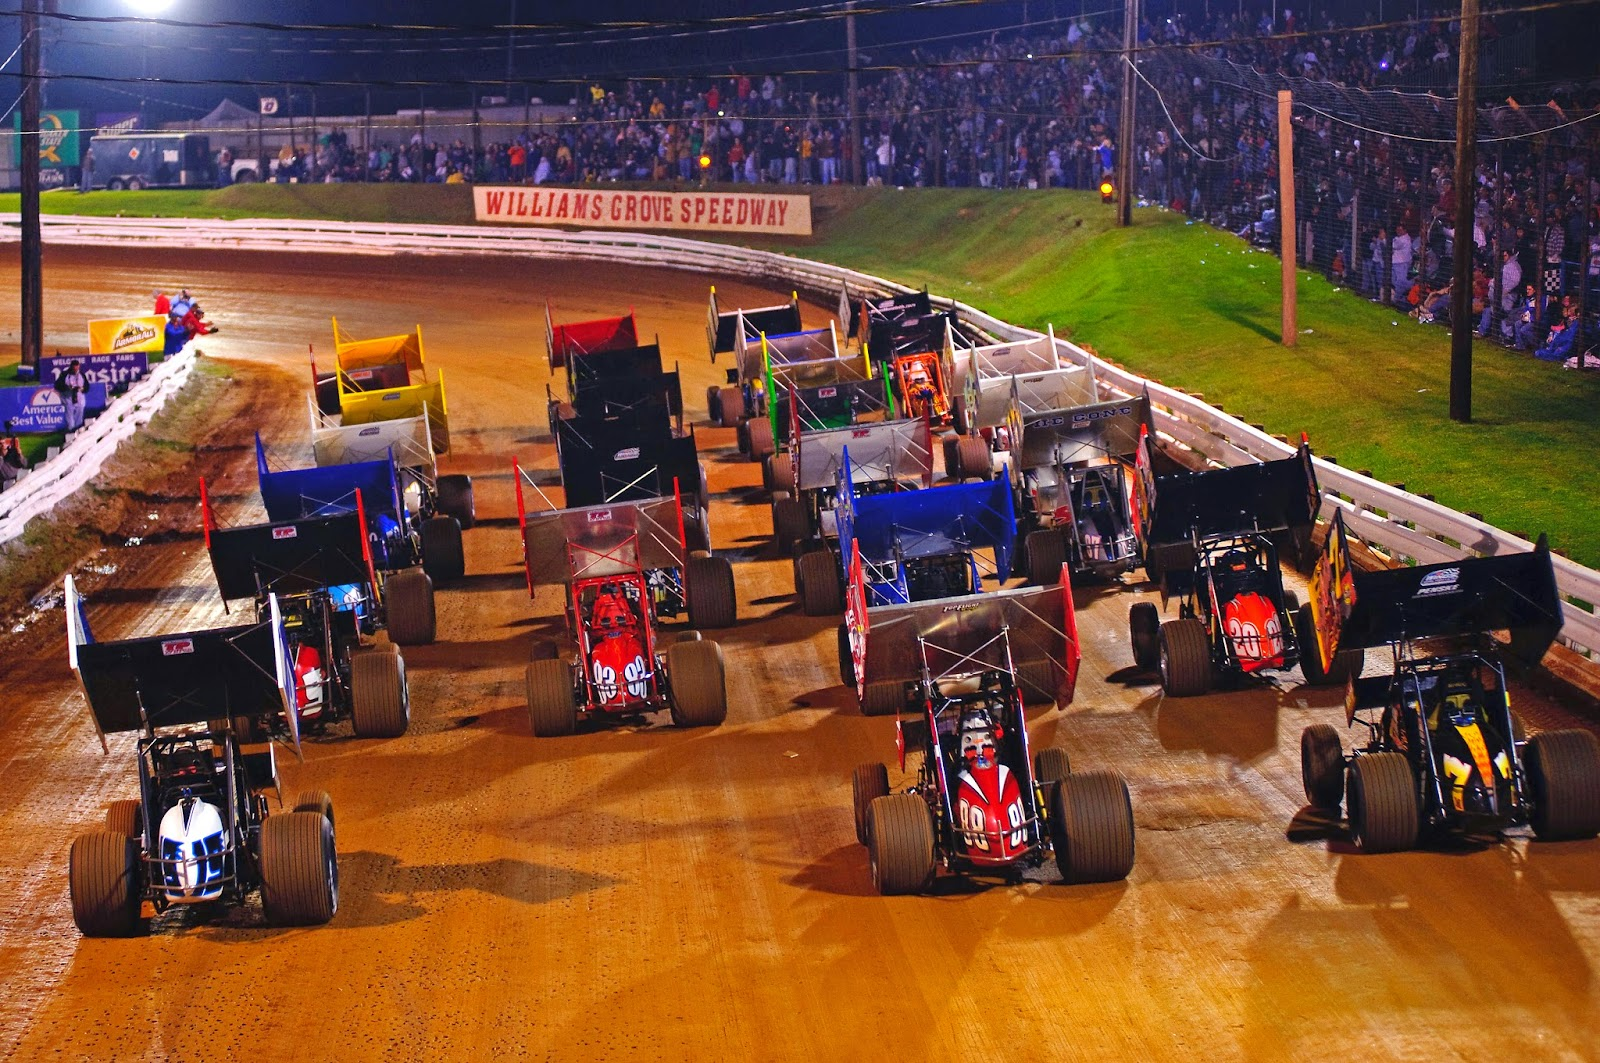 Starting in 1939, Williams Grove Speedway has been one of the top sprint car tracks in the country.  The speedway is a ½ mile banked smooth clay oval with speeds reaching in excess of 100 mph.  The 2016 racing season runs from March 18th to October 7th.